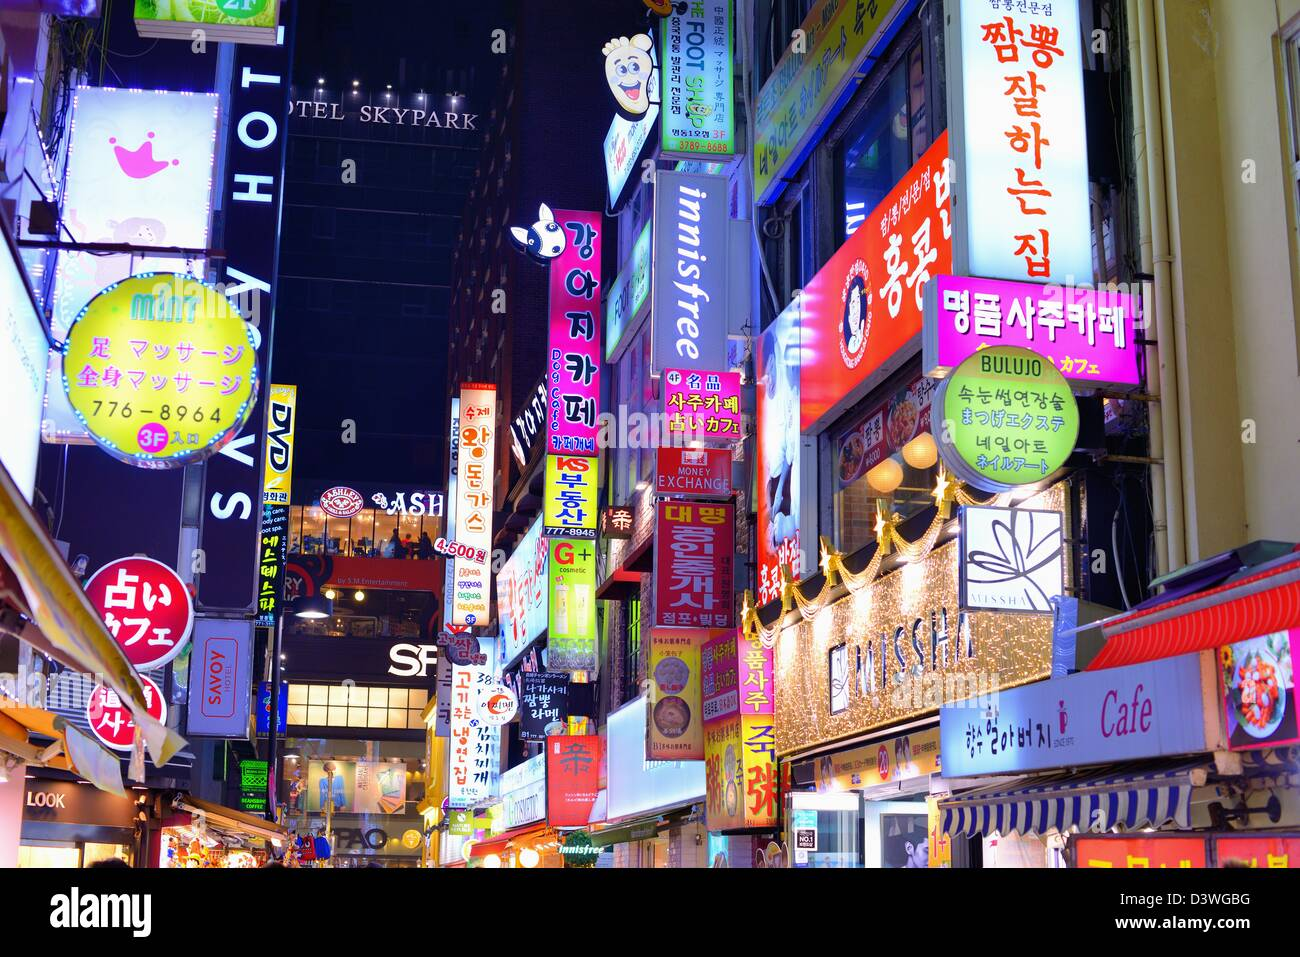 Neon signs in Myeong-dong district of Seoul, South Korea. - Stock Image